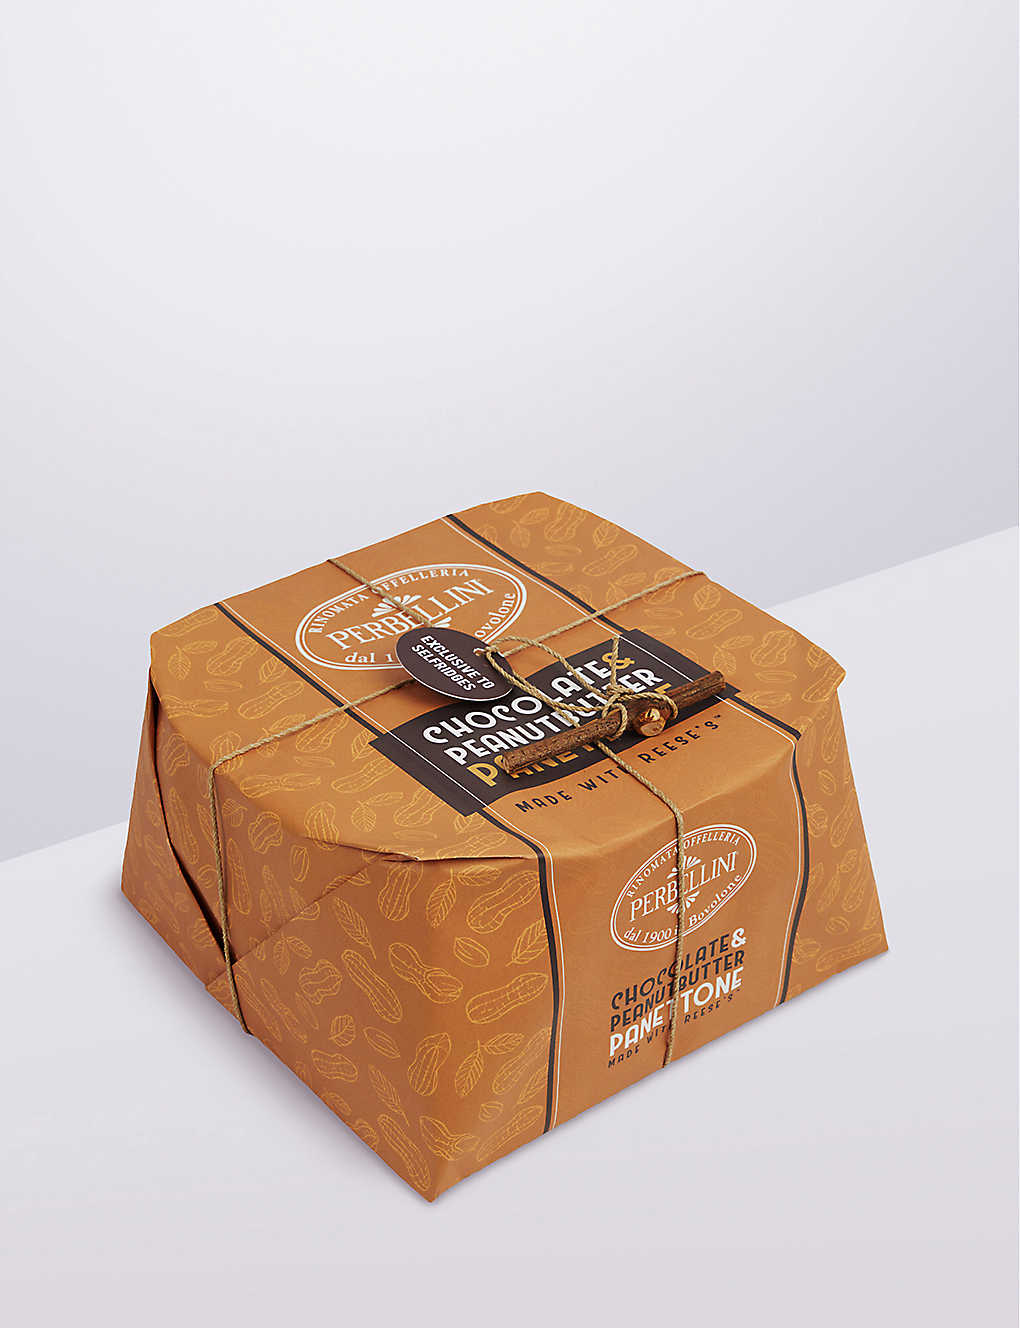 8fcd91519e PERBELLINI - Chocolate Peanut Butter Panettone made with Reese's ...